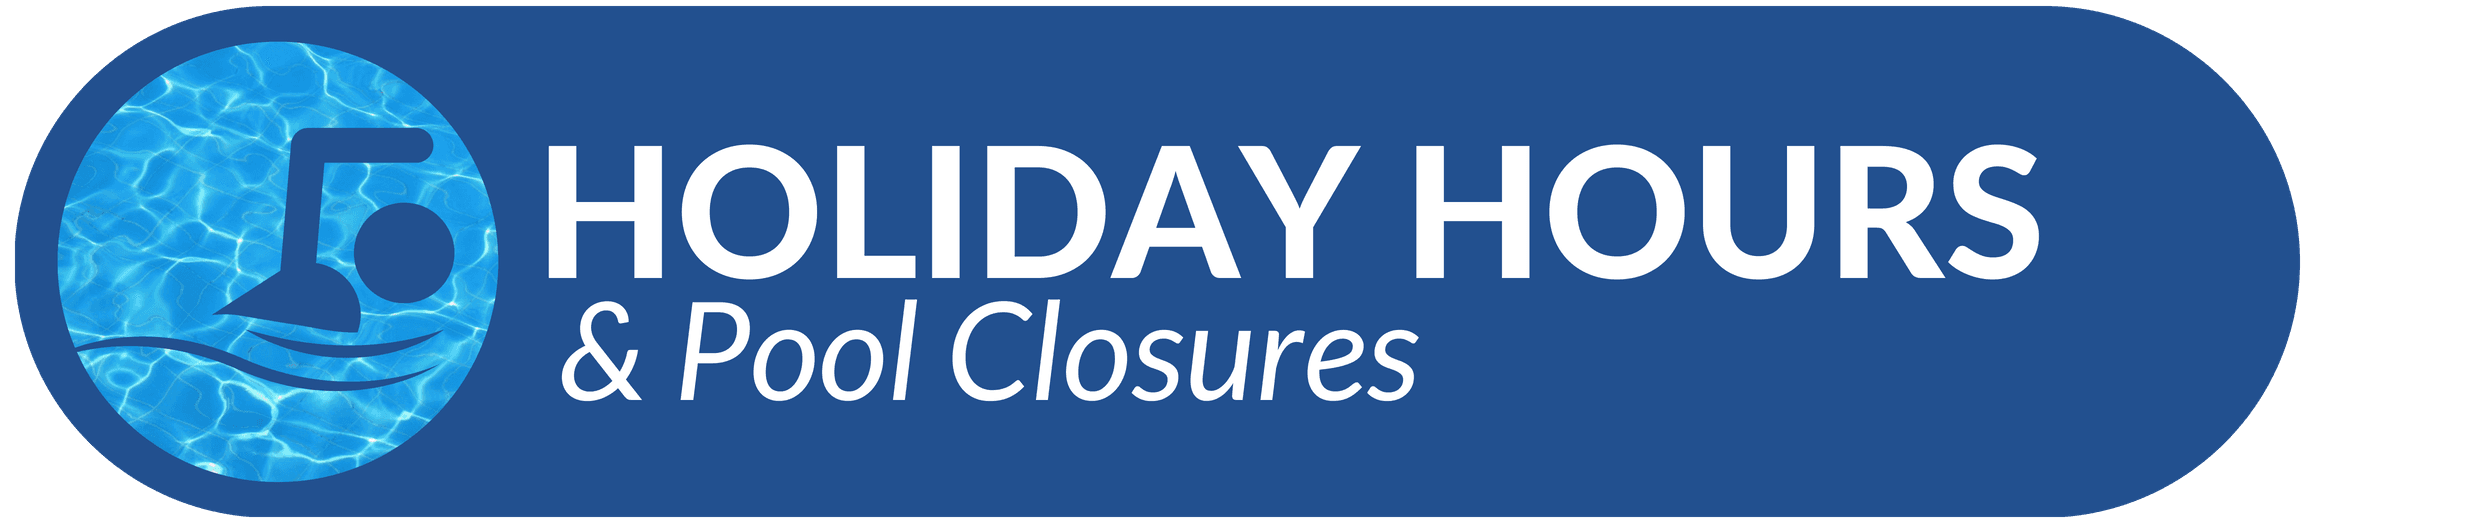 """Holiday Hours and Pool Closures"" banner"